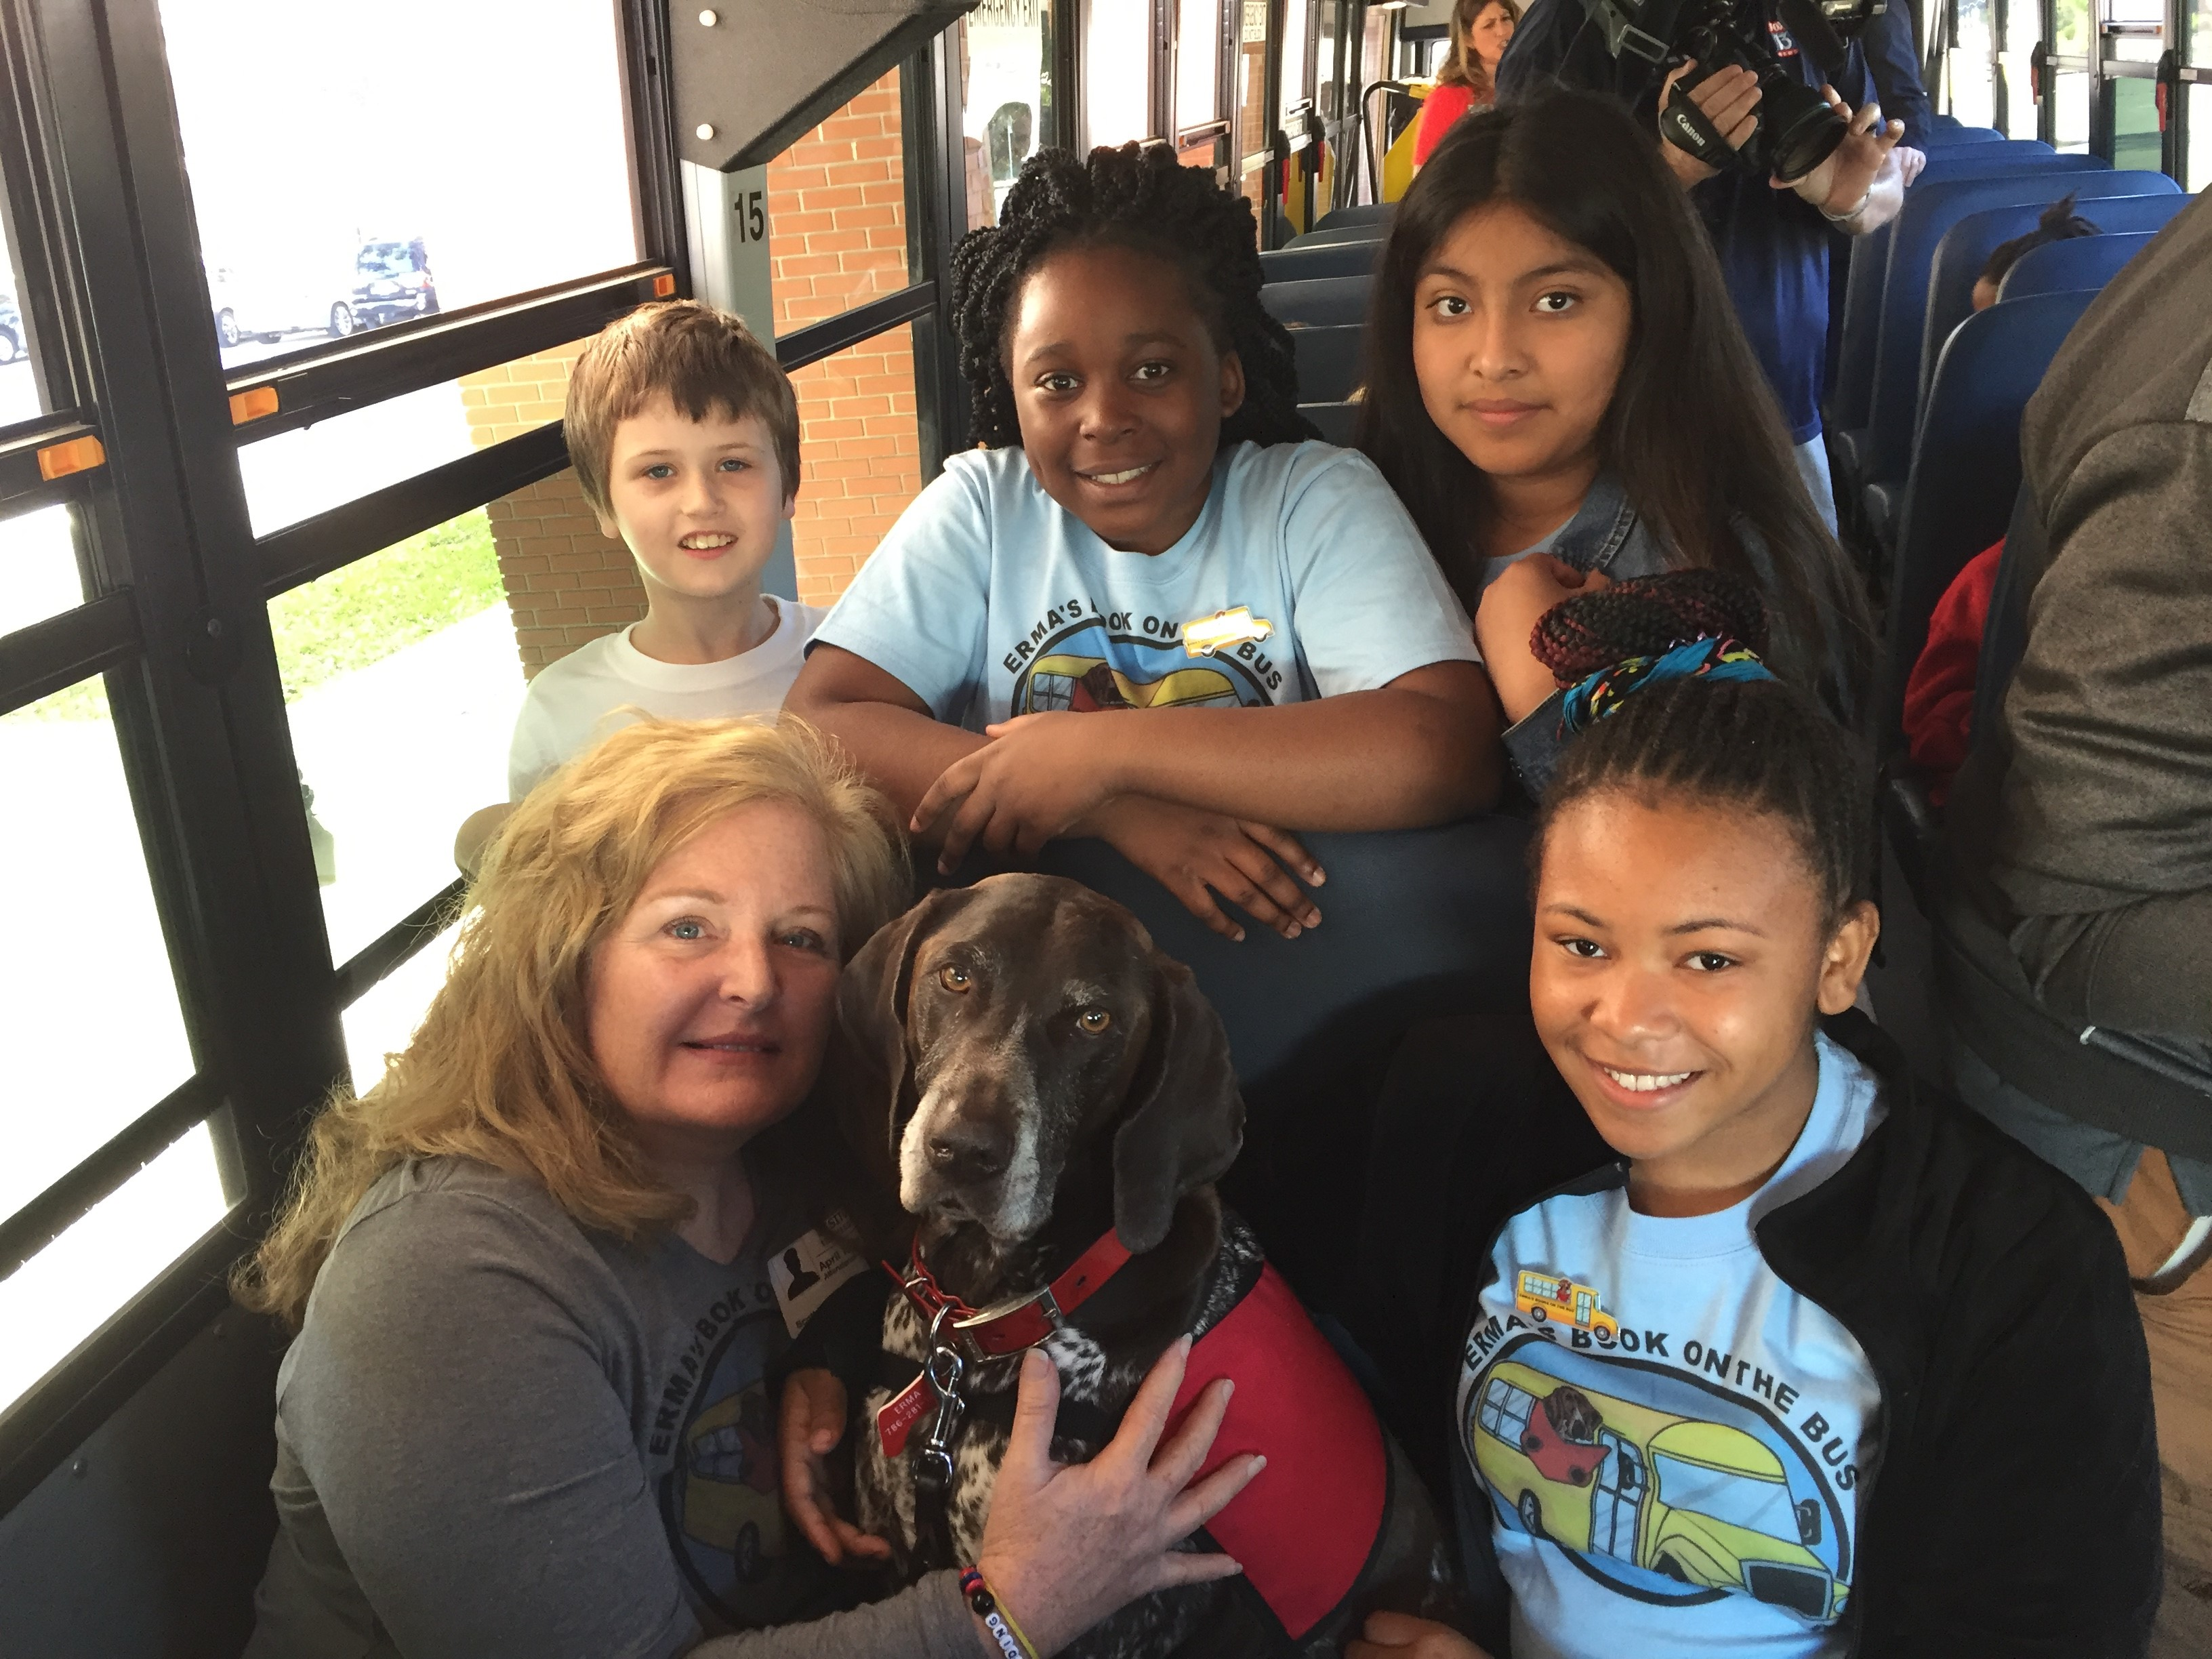 Photos from the Erma's Books on the Bus kickoff event at Scott Lake Elementary